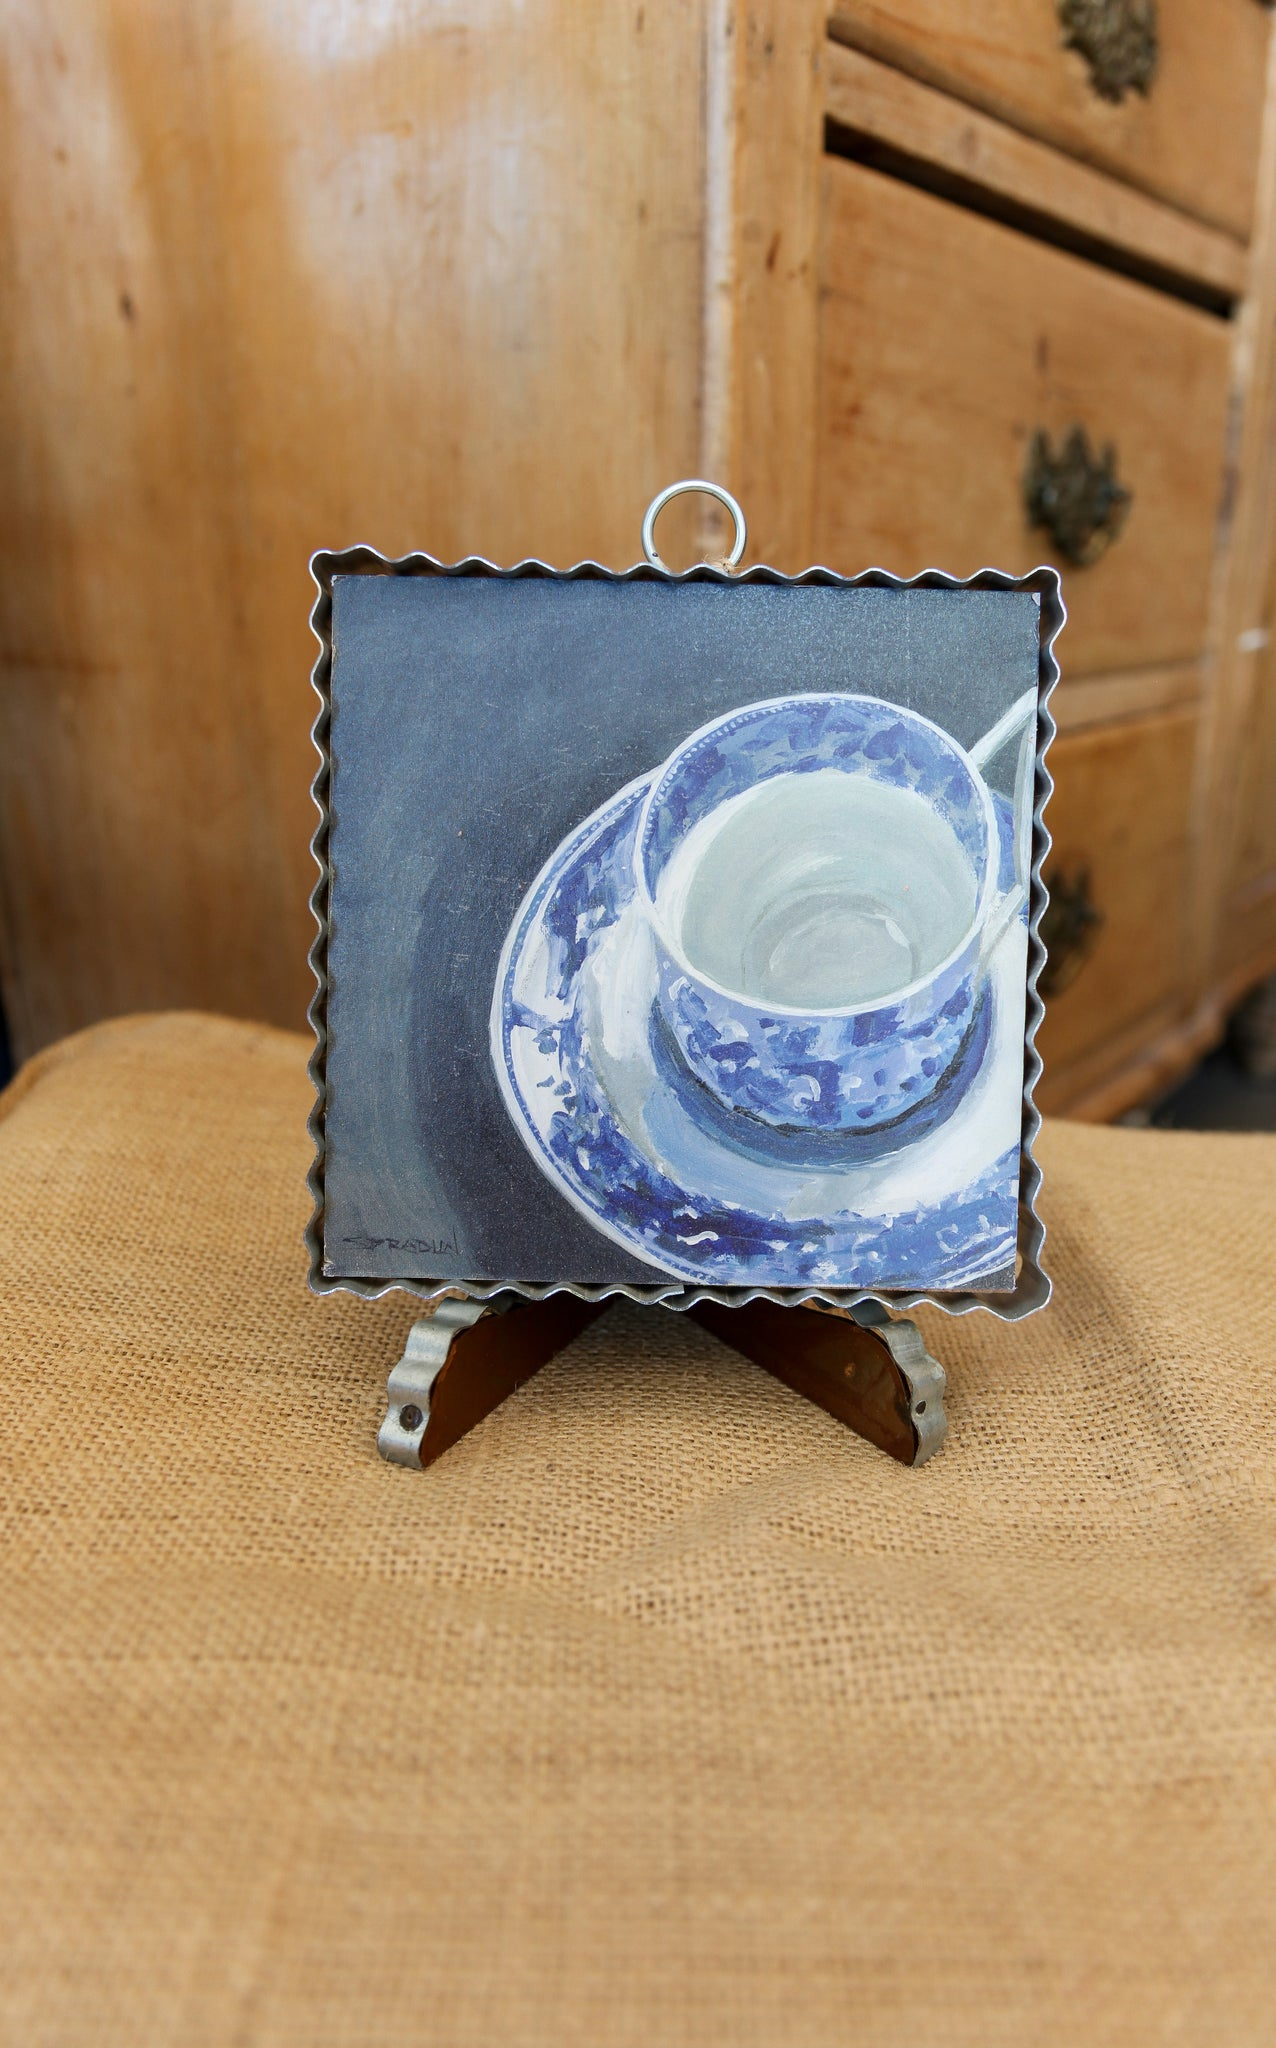 MINI PIE CRUST ART - BLUE & WHITE TEA CUP